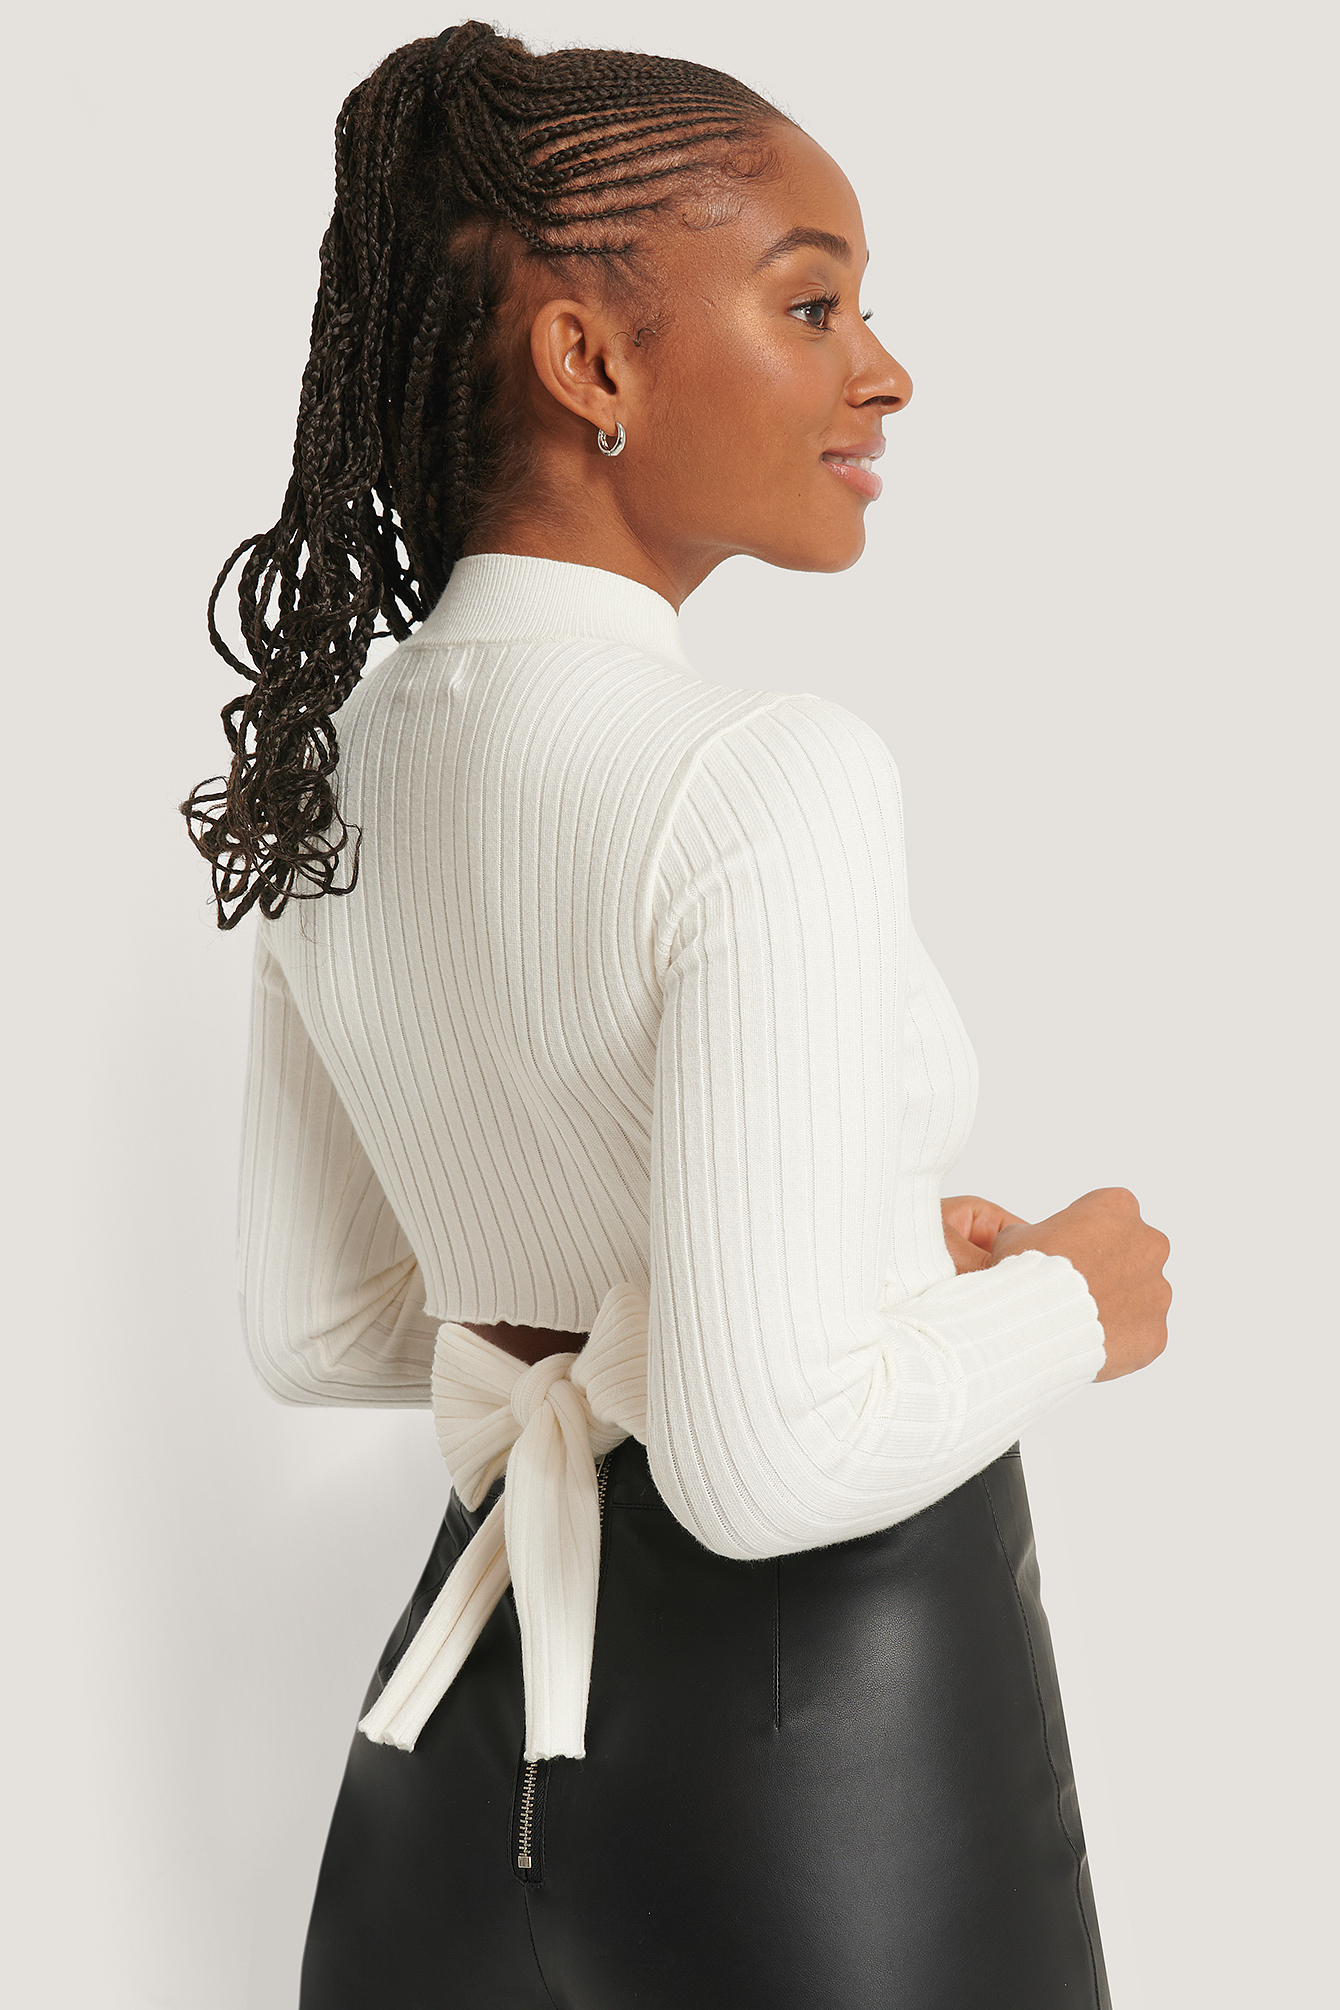 Romy X Na-kd Tied Back Knitted Top - White